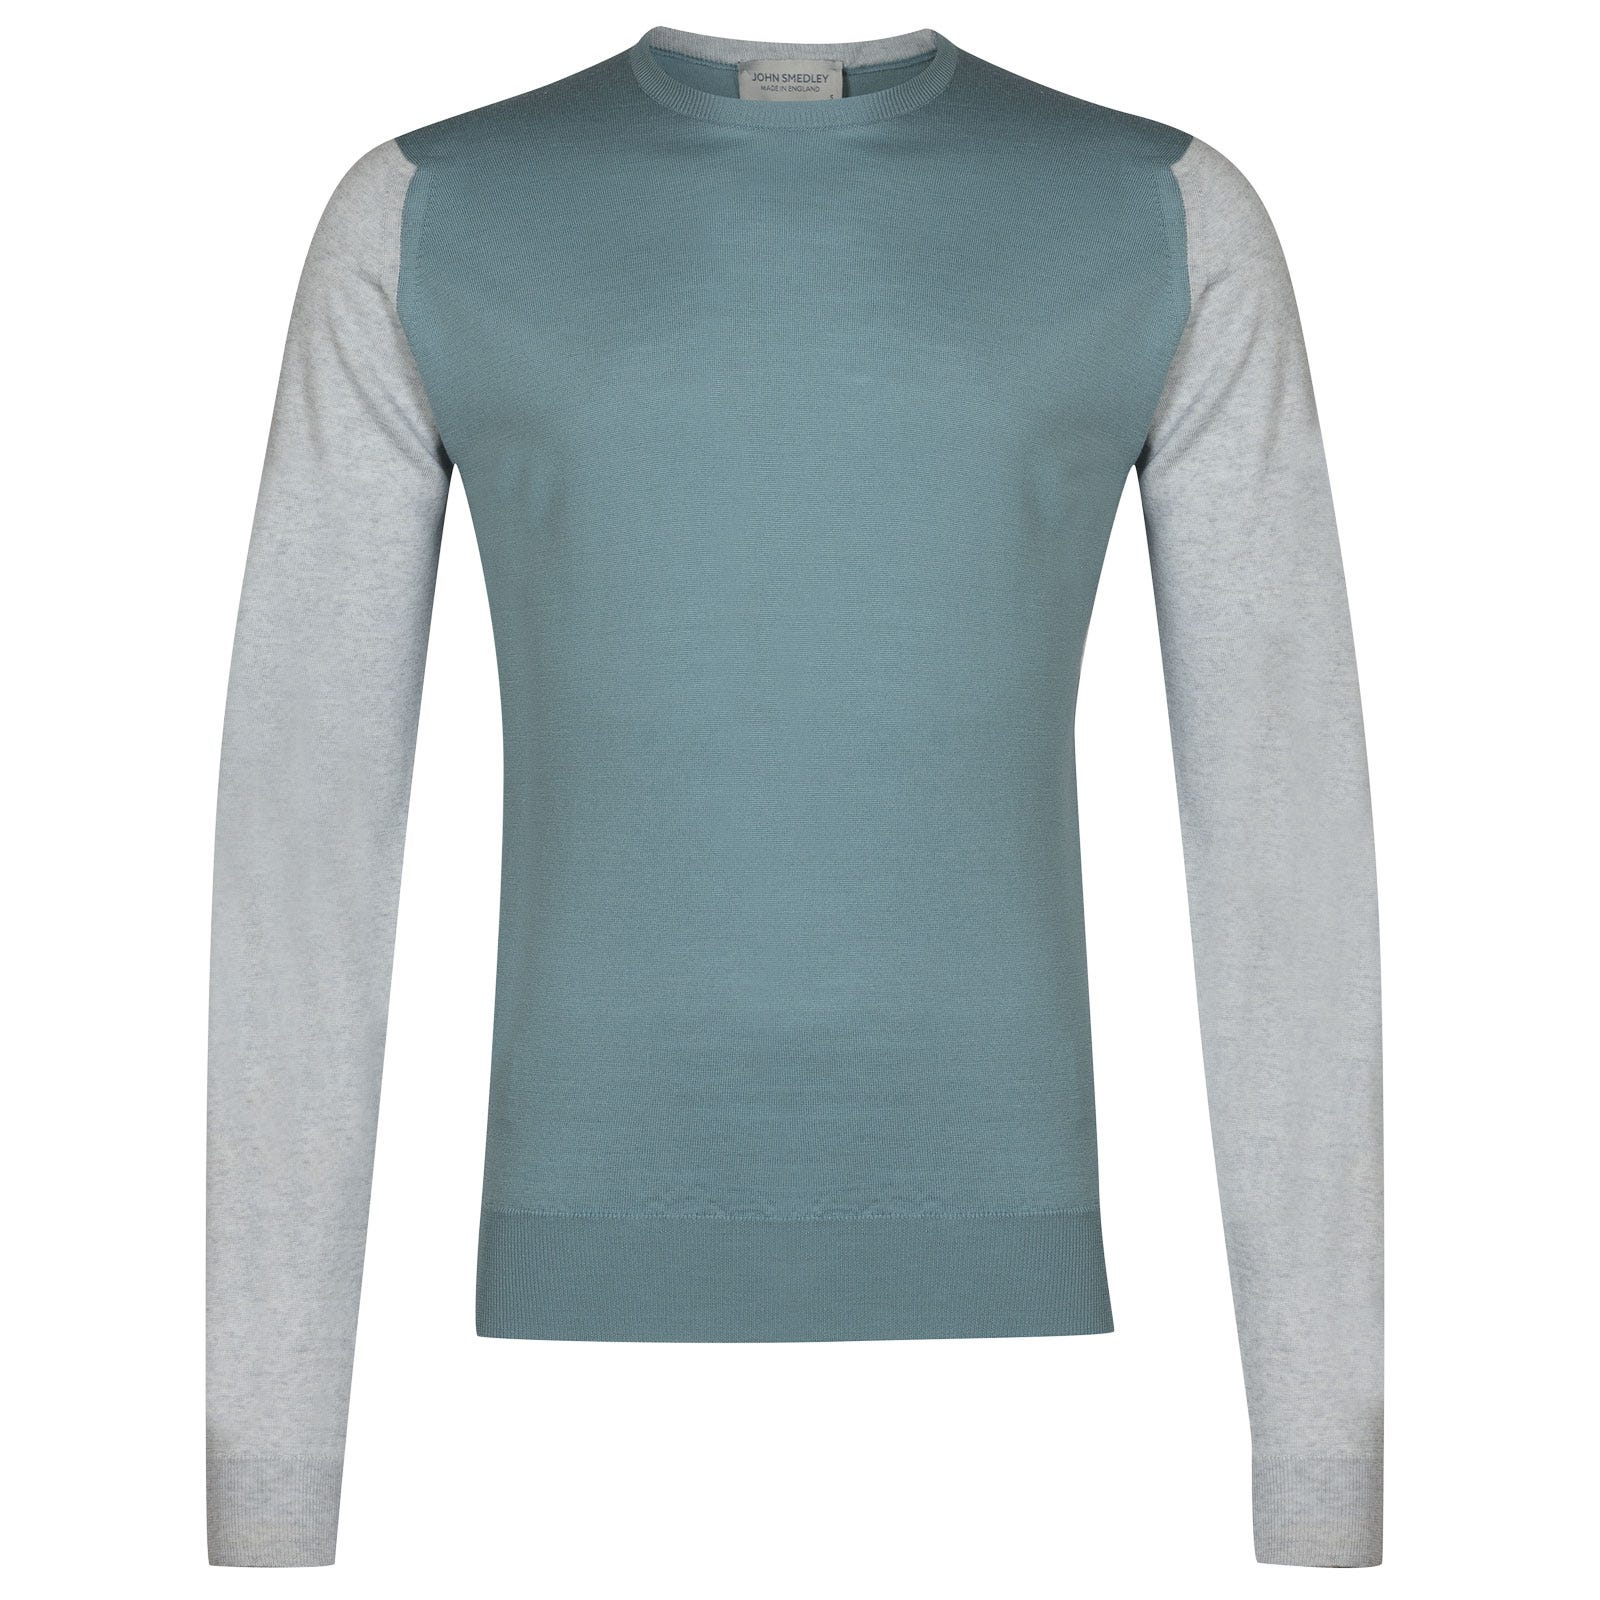 John Smedley hindlow Merino Wool Pullover in Bardot Grey/Summit